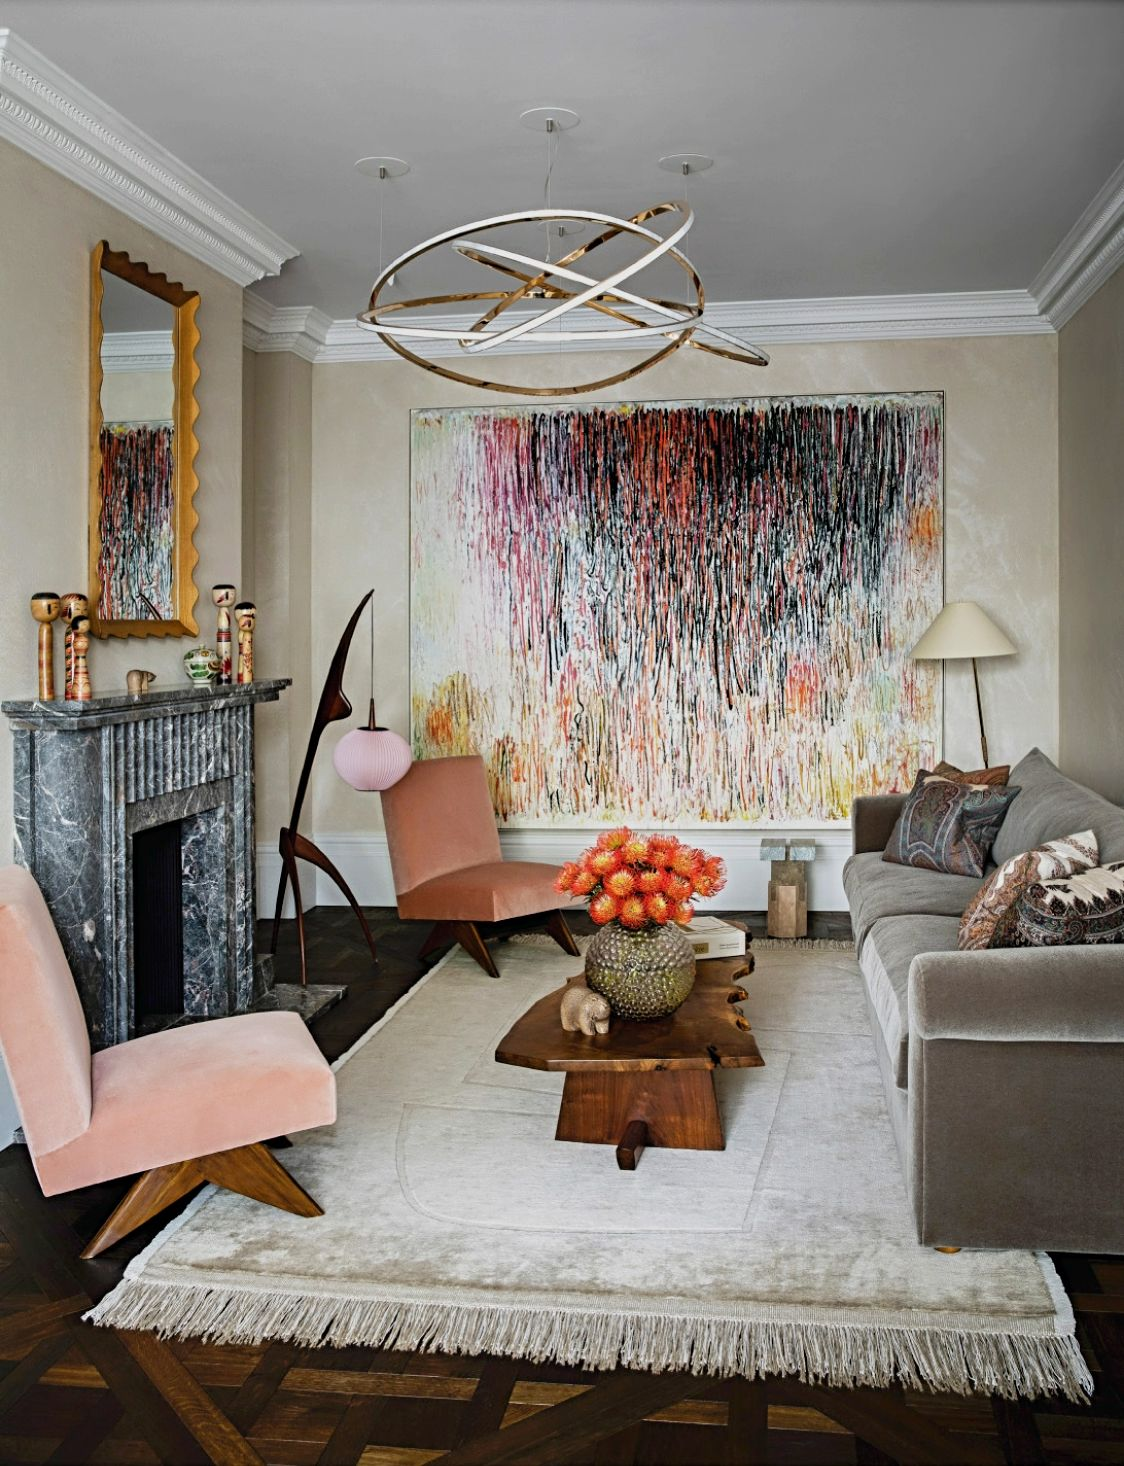 March 2019 Issue of Architectural Digest   Home, Decor ...